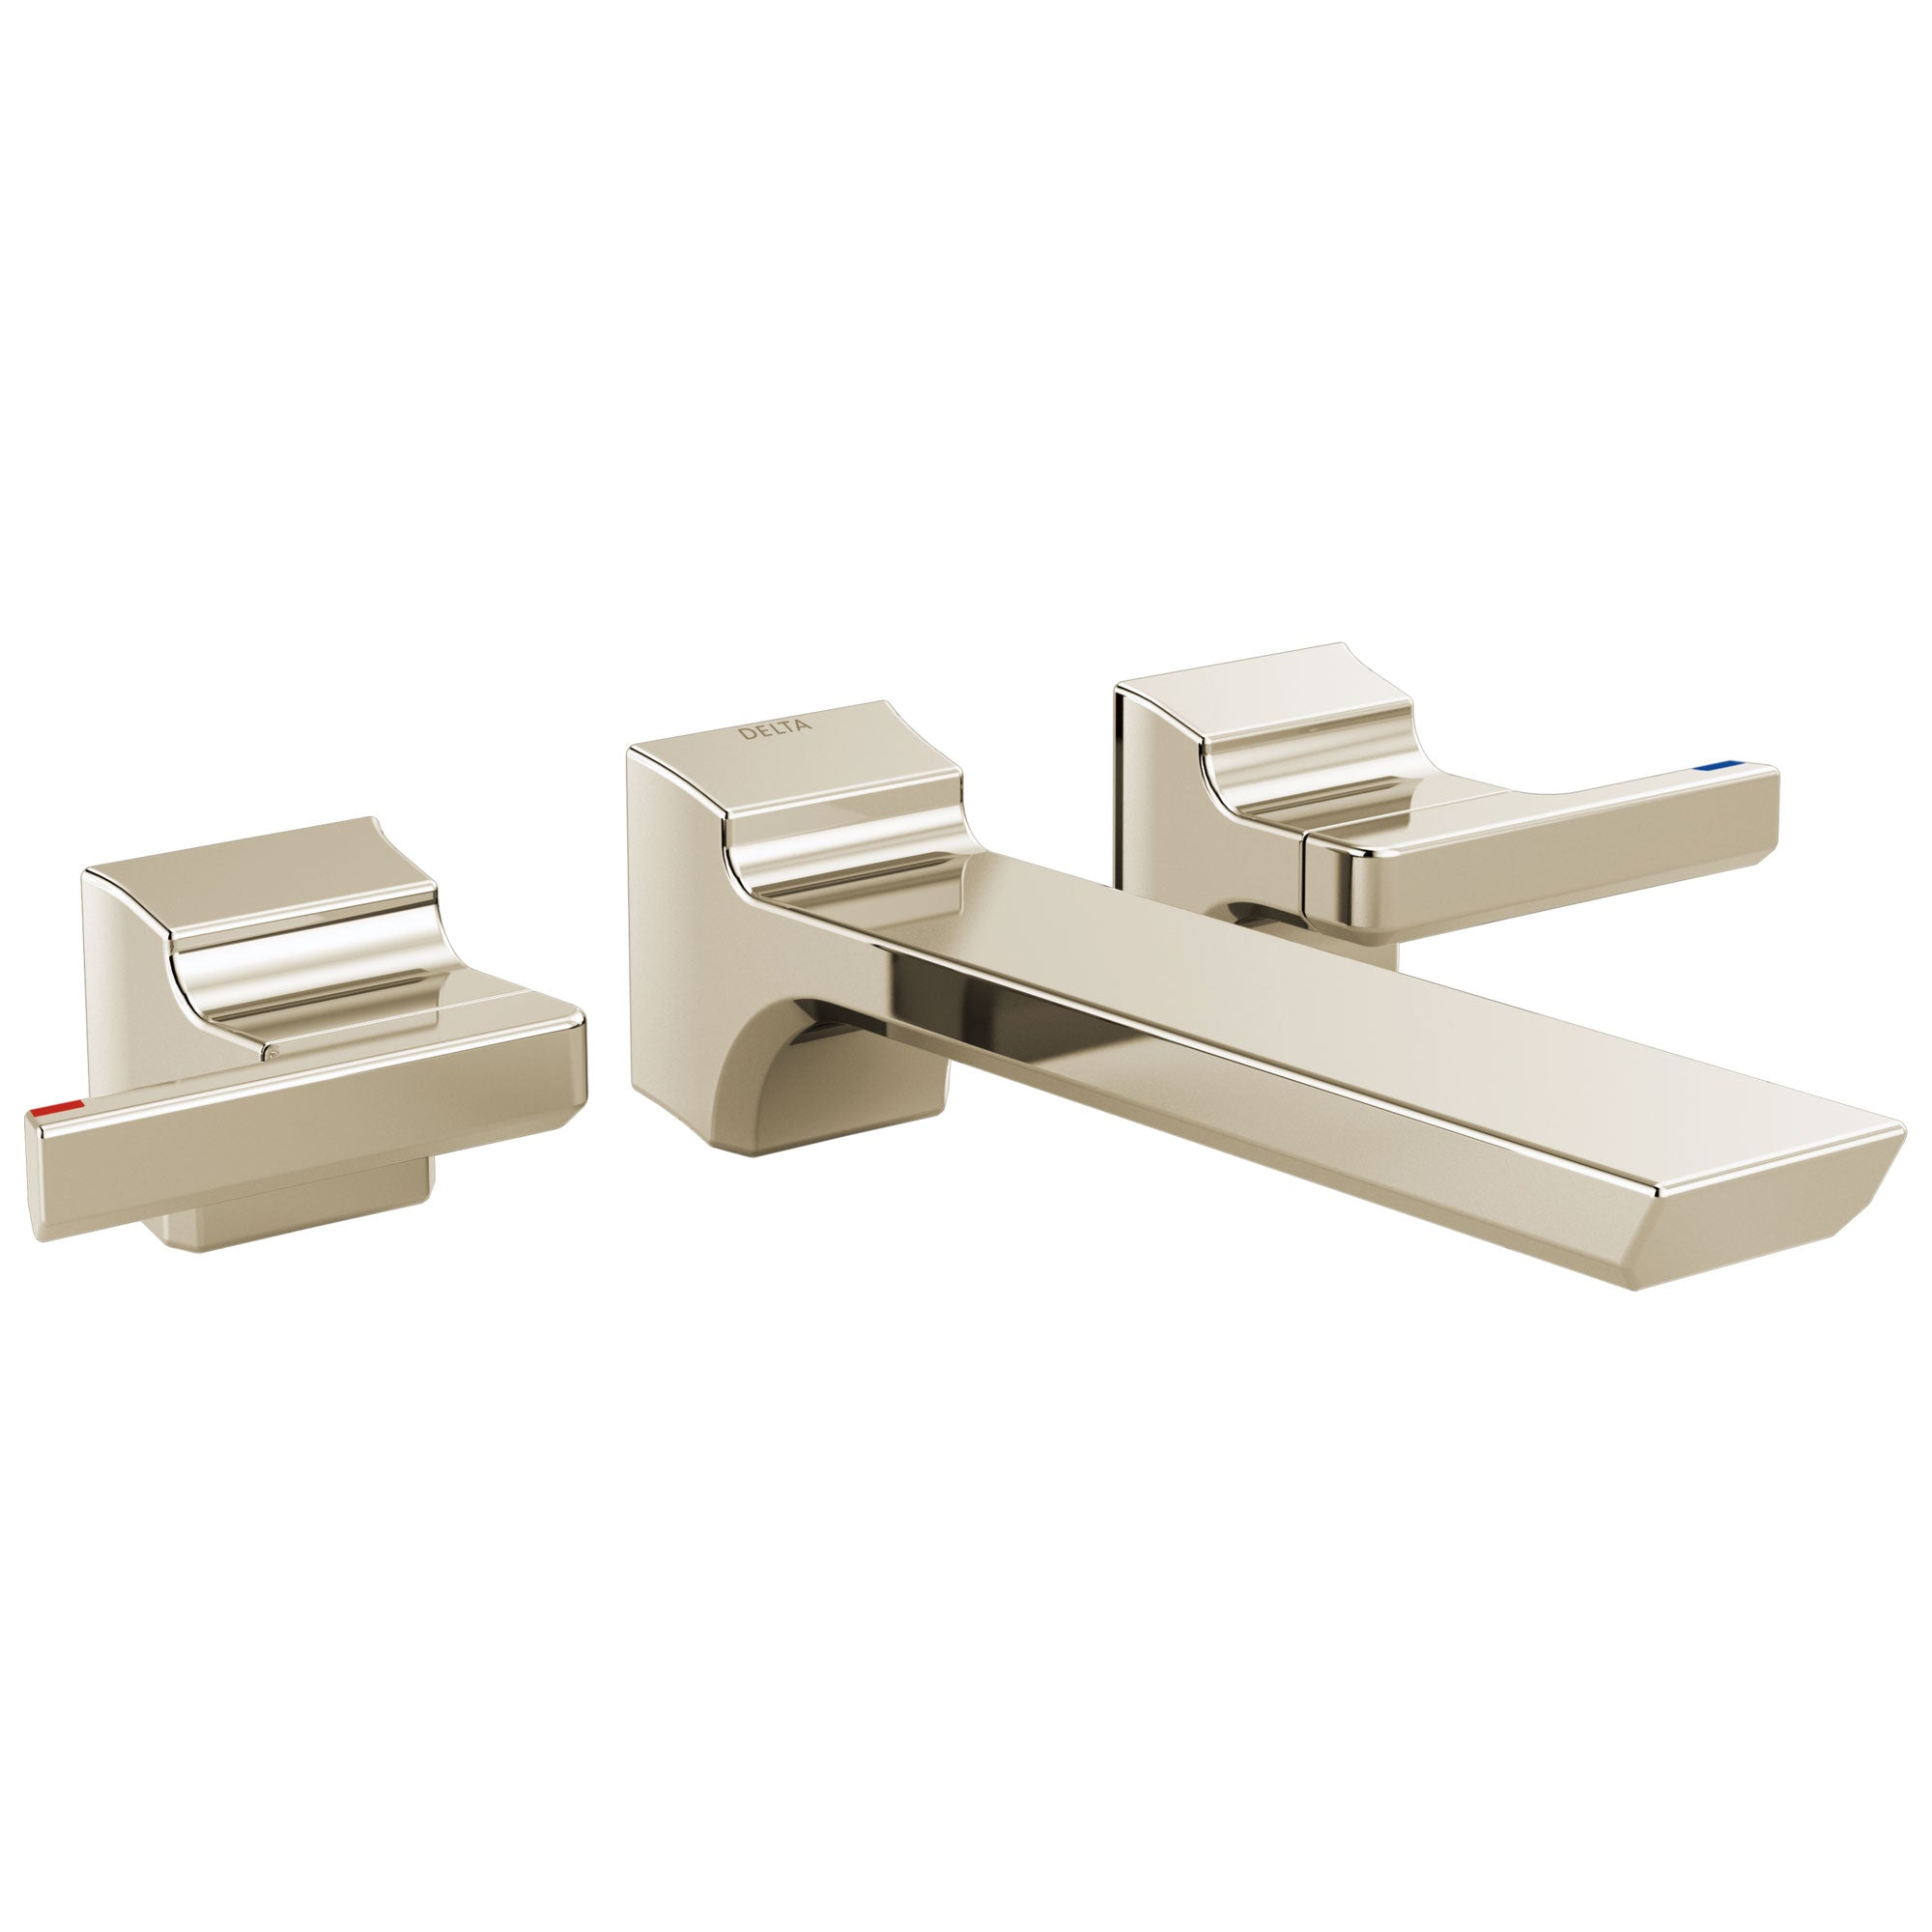 Delta Pivotal Polished Nickel Finish Two-Handle Wall Mount Bathroom Faucet Trim Kit (Requires Valve) DT3599LFPNWL